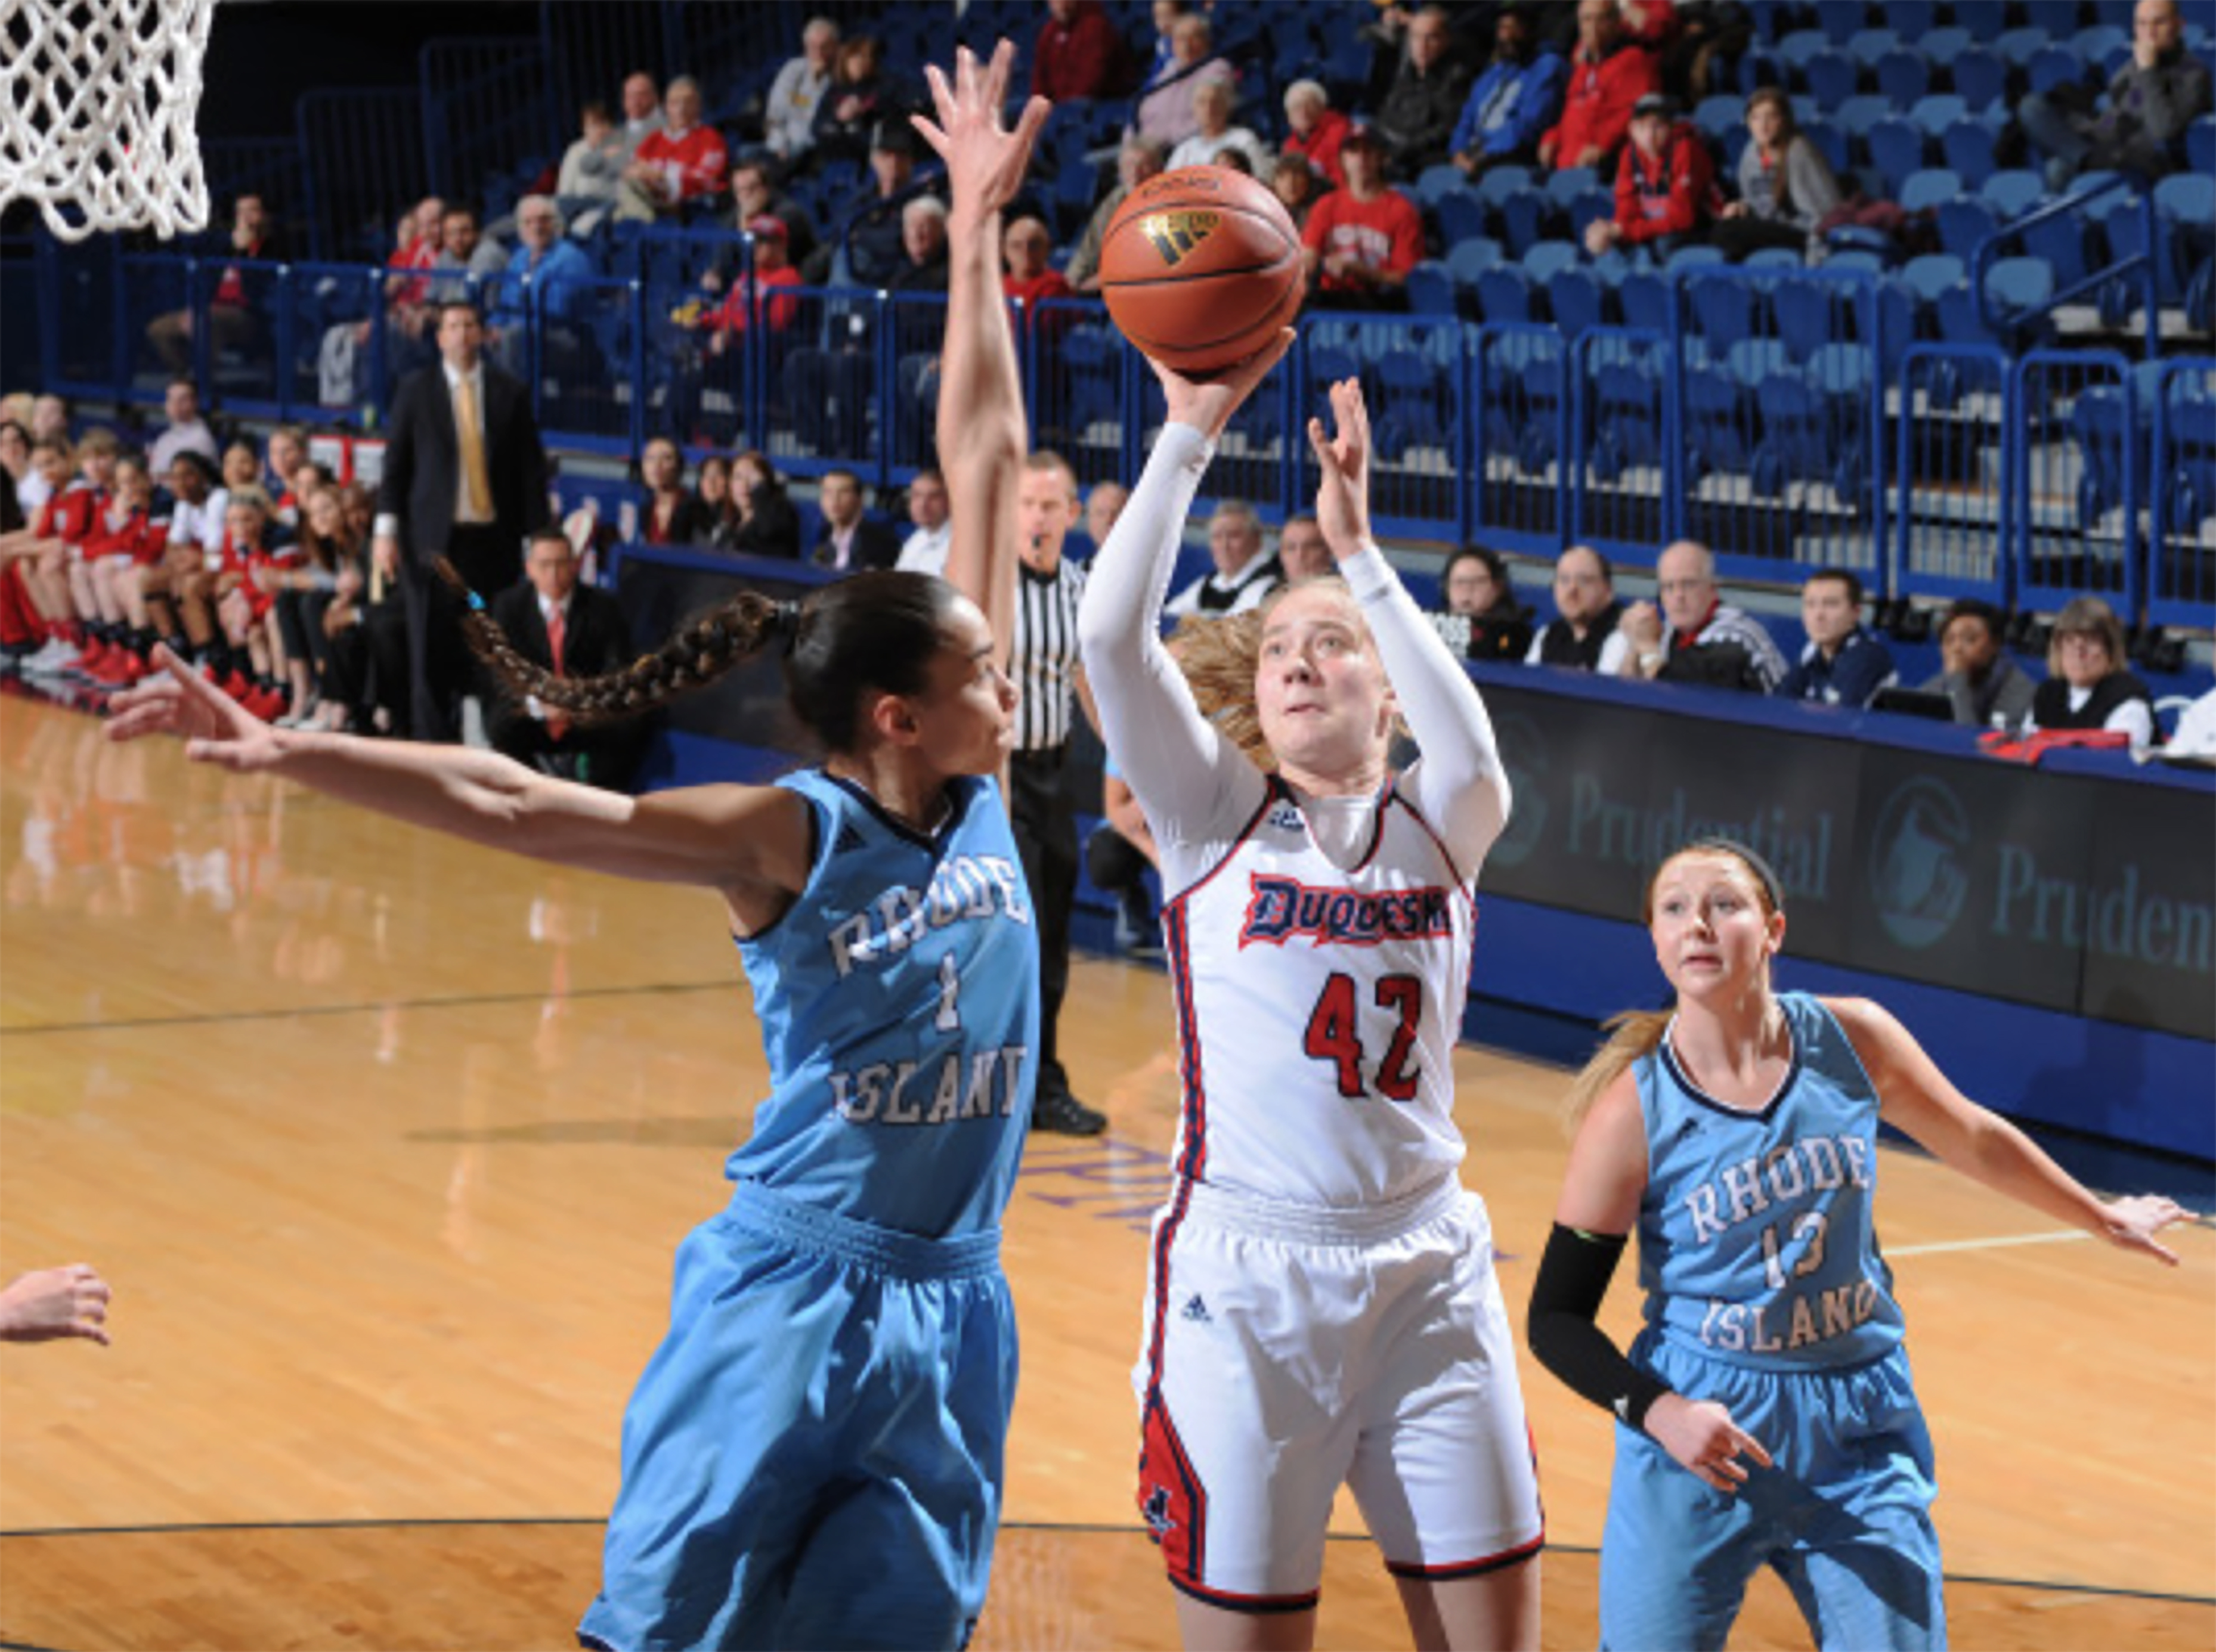 duquesne single women Tickets for basketball games: buy duquesne womens basketball basketball single game tickets at ticketmastercom find game schedules and team promotions.